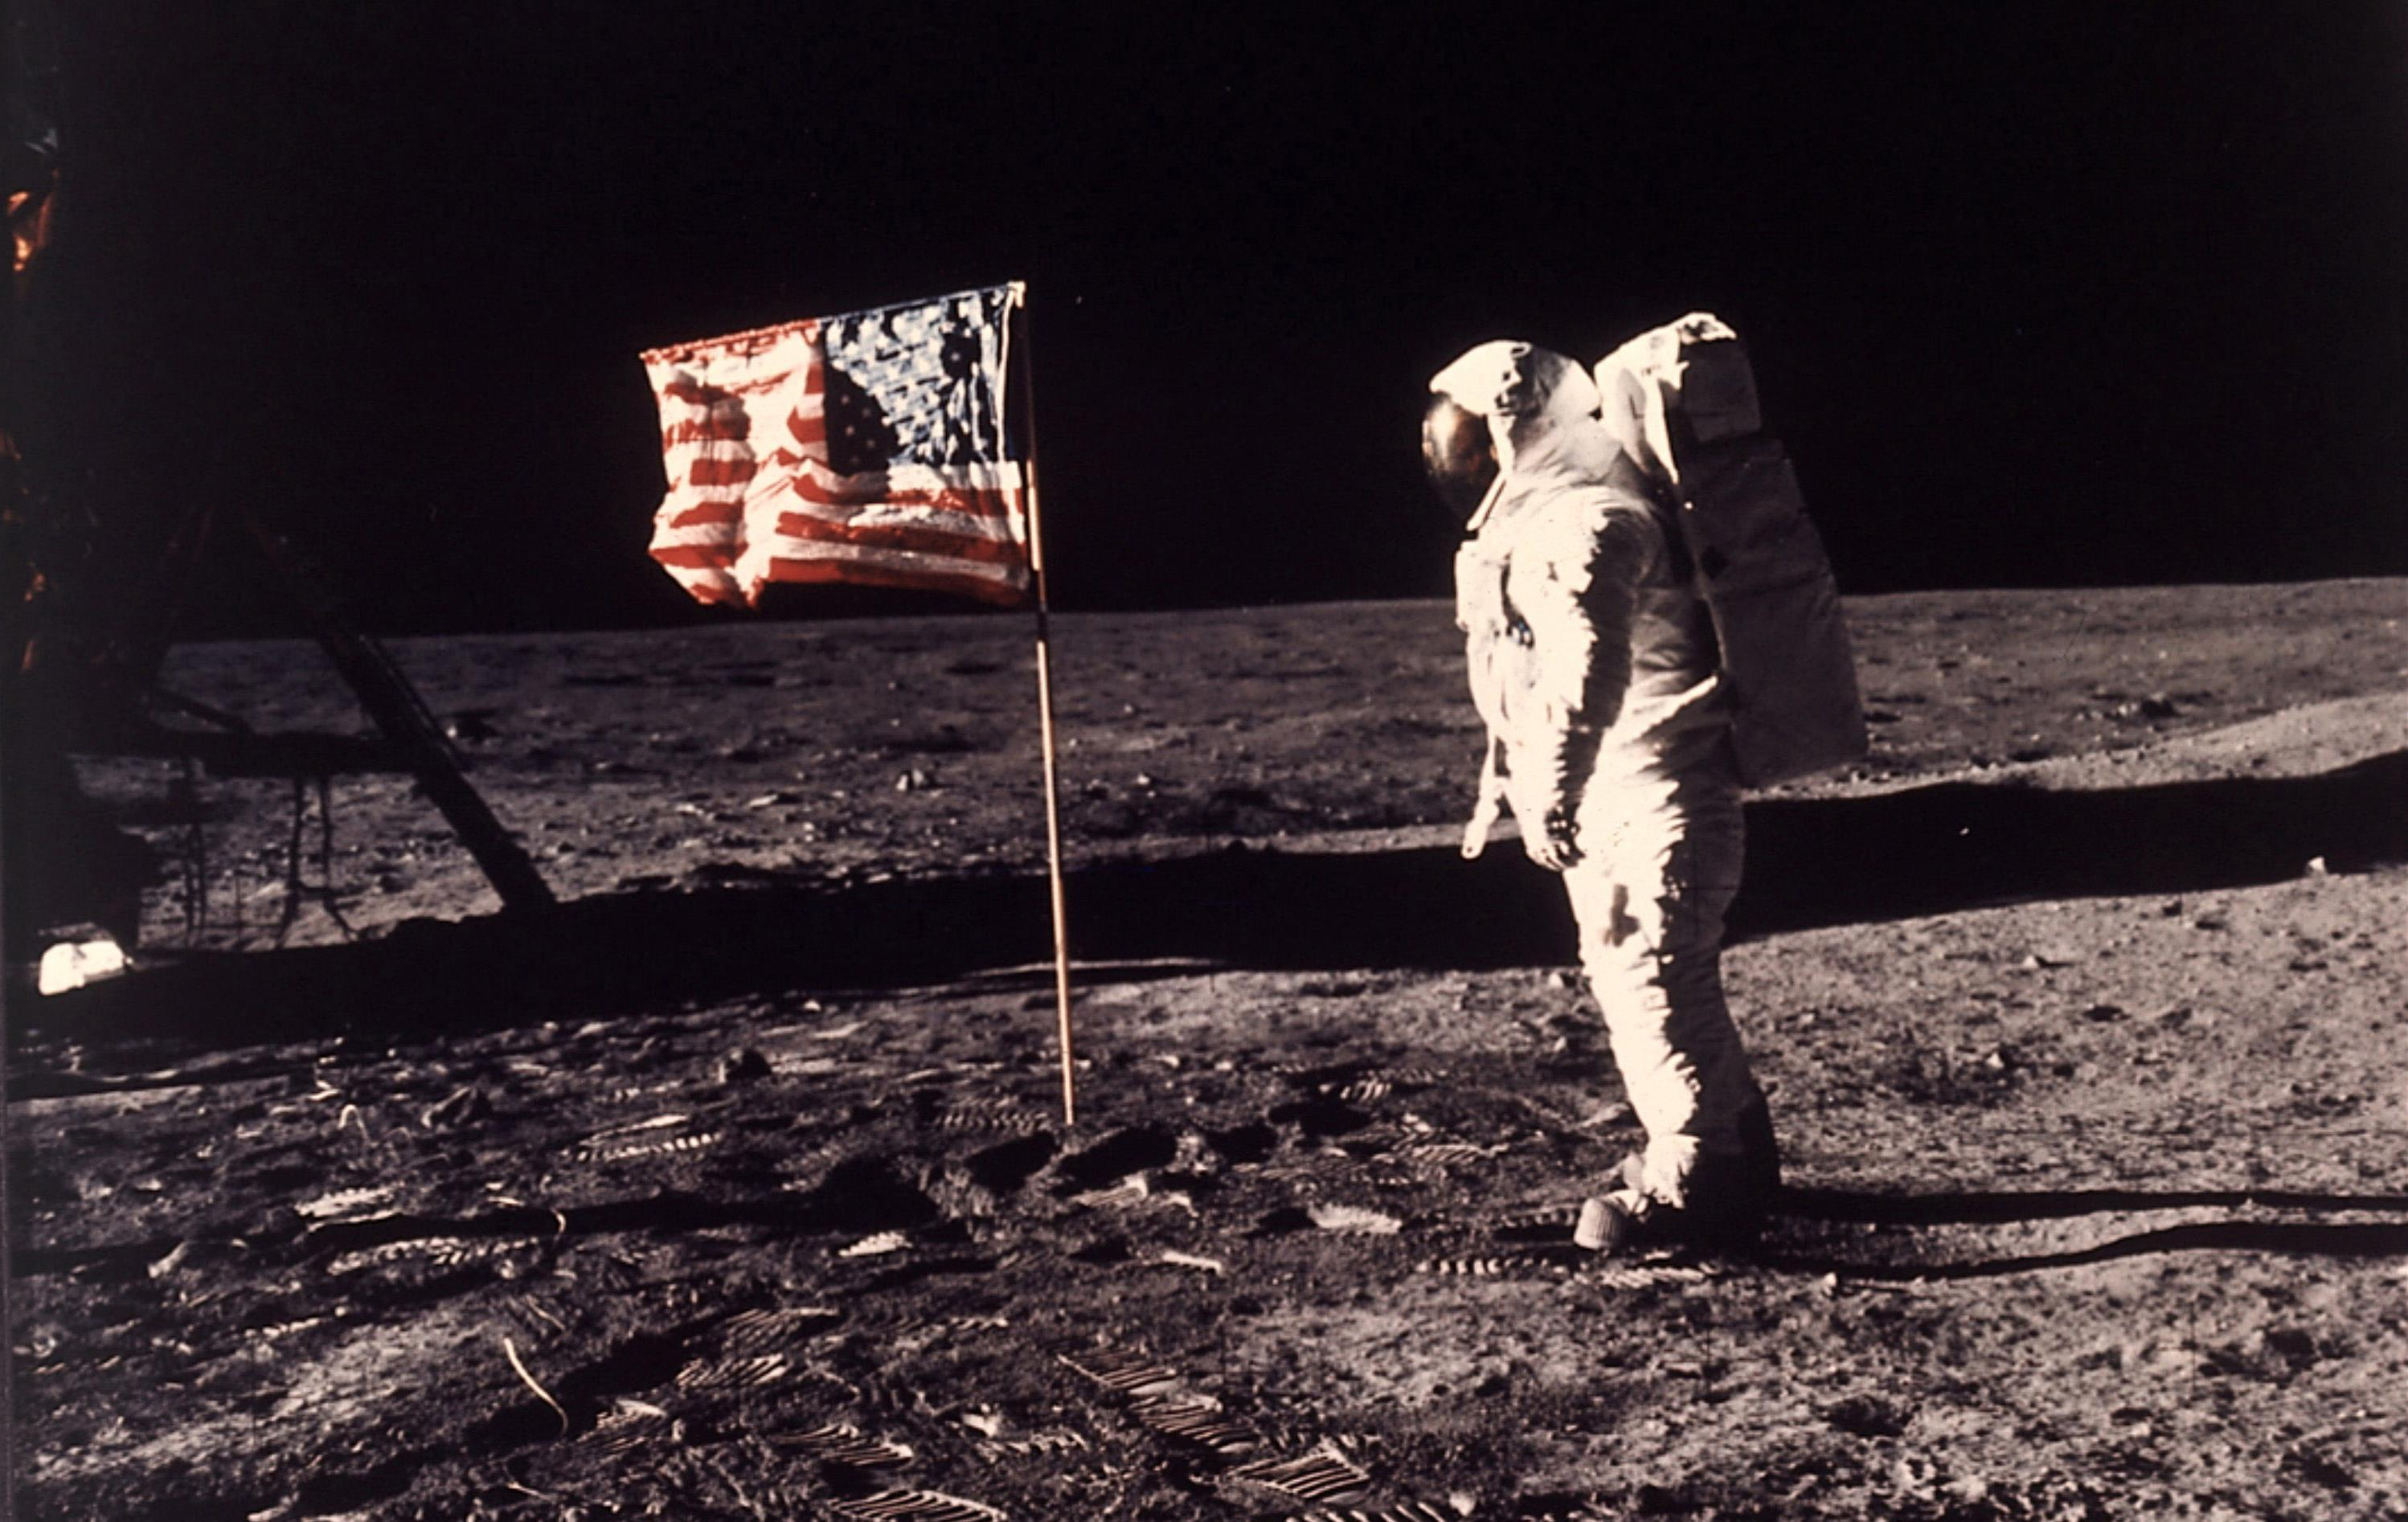 a history of neil armstrong and buzz aldrin landing on the moon How buzz aldrin's communion on the moon was hushed up buzz aldrin stands on the moon, with astronaut neil armstrong and lunar module reflected in history.